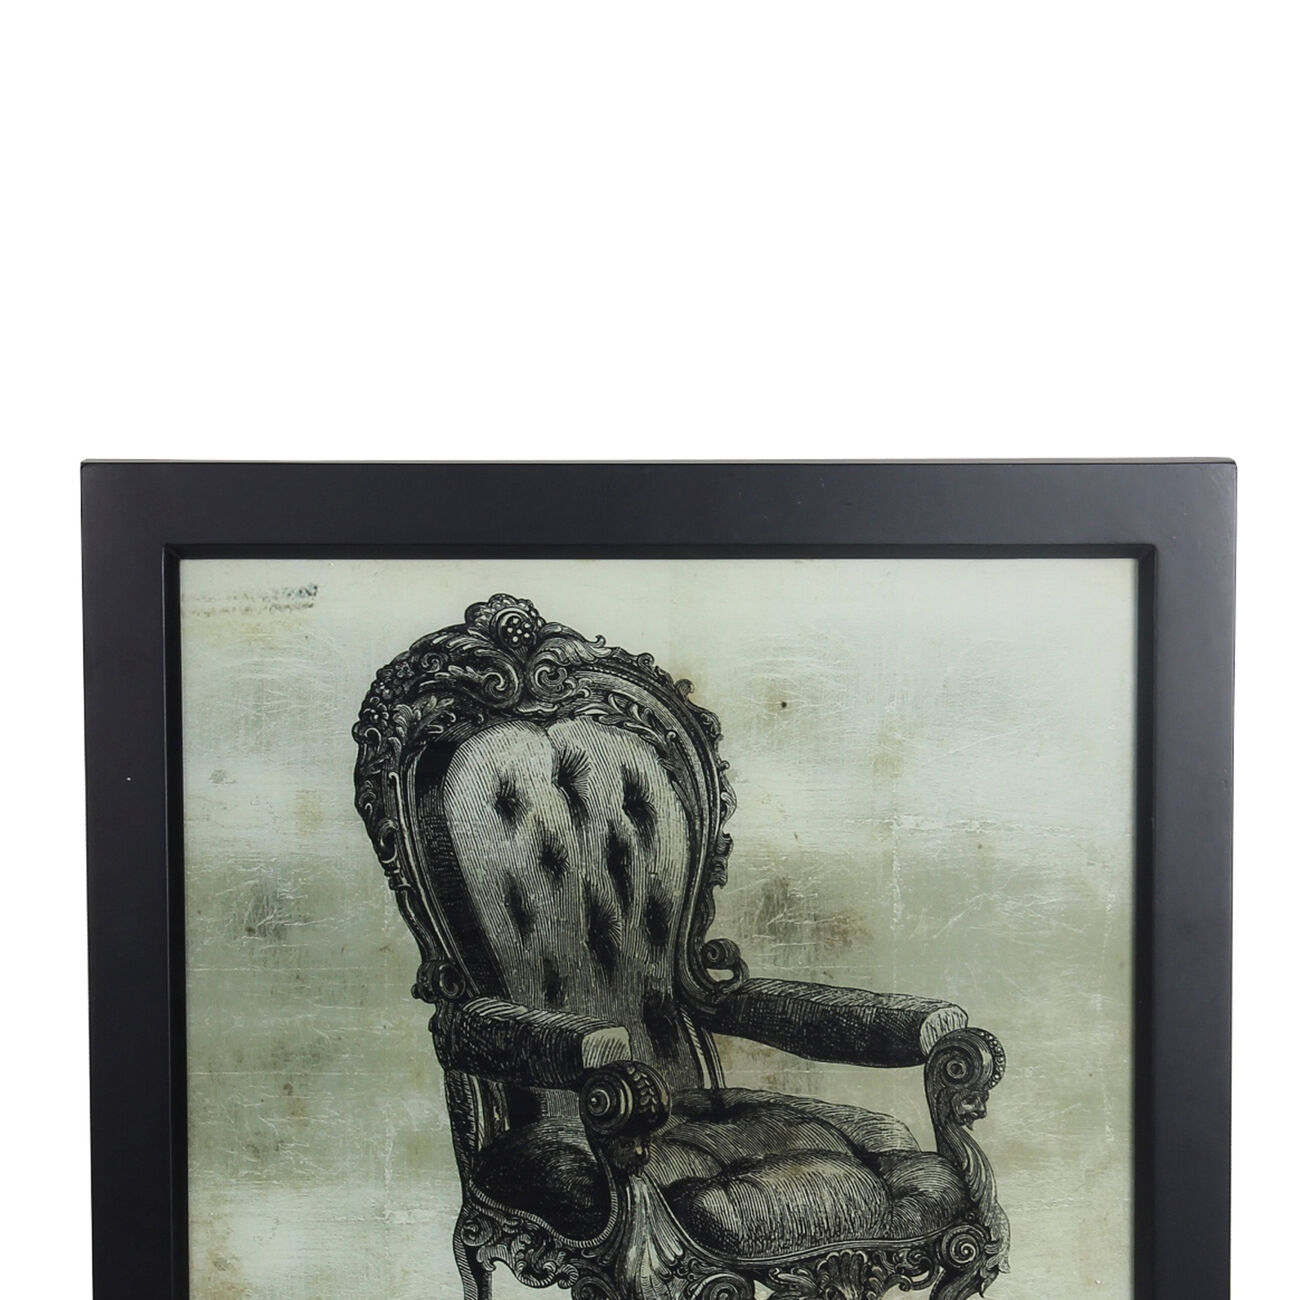 Square Shaped Vintage Chair Wall Art with Wooden Frame, Gray and Black